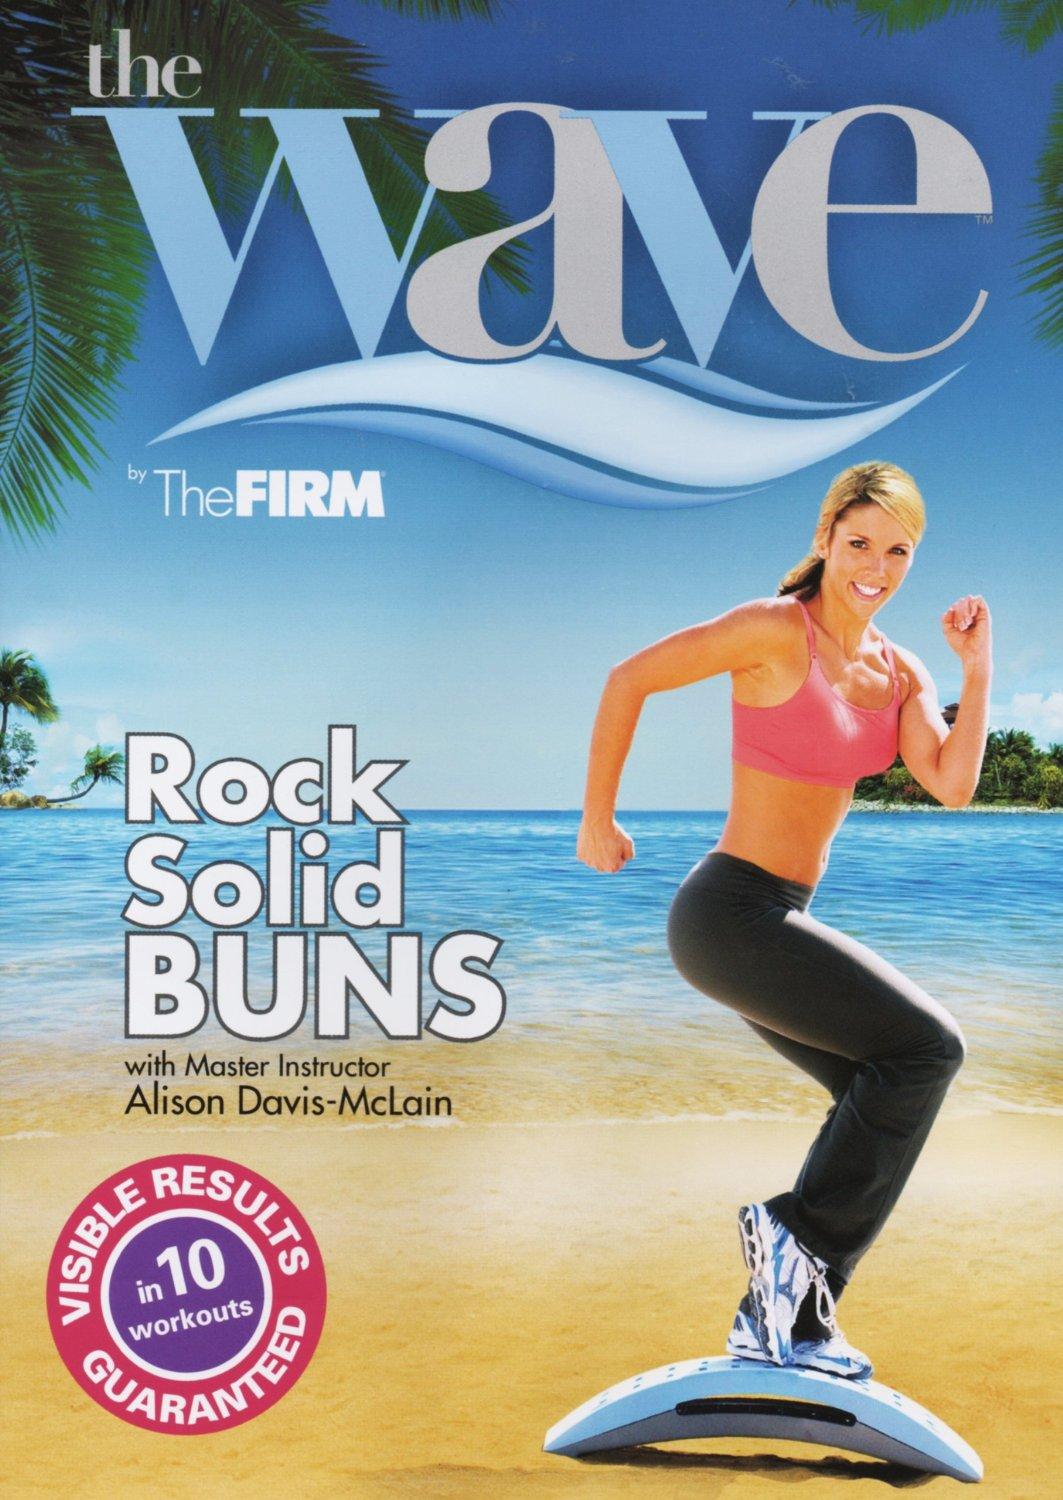 The WAVE by The FIRM Rock Solid Buns DVD 2008